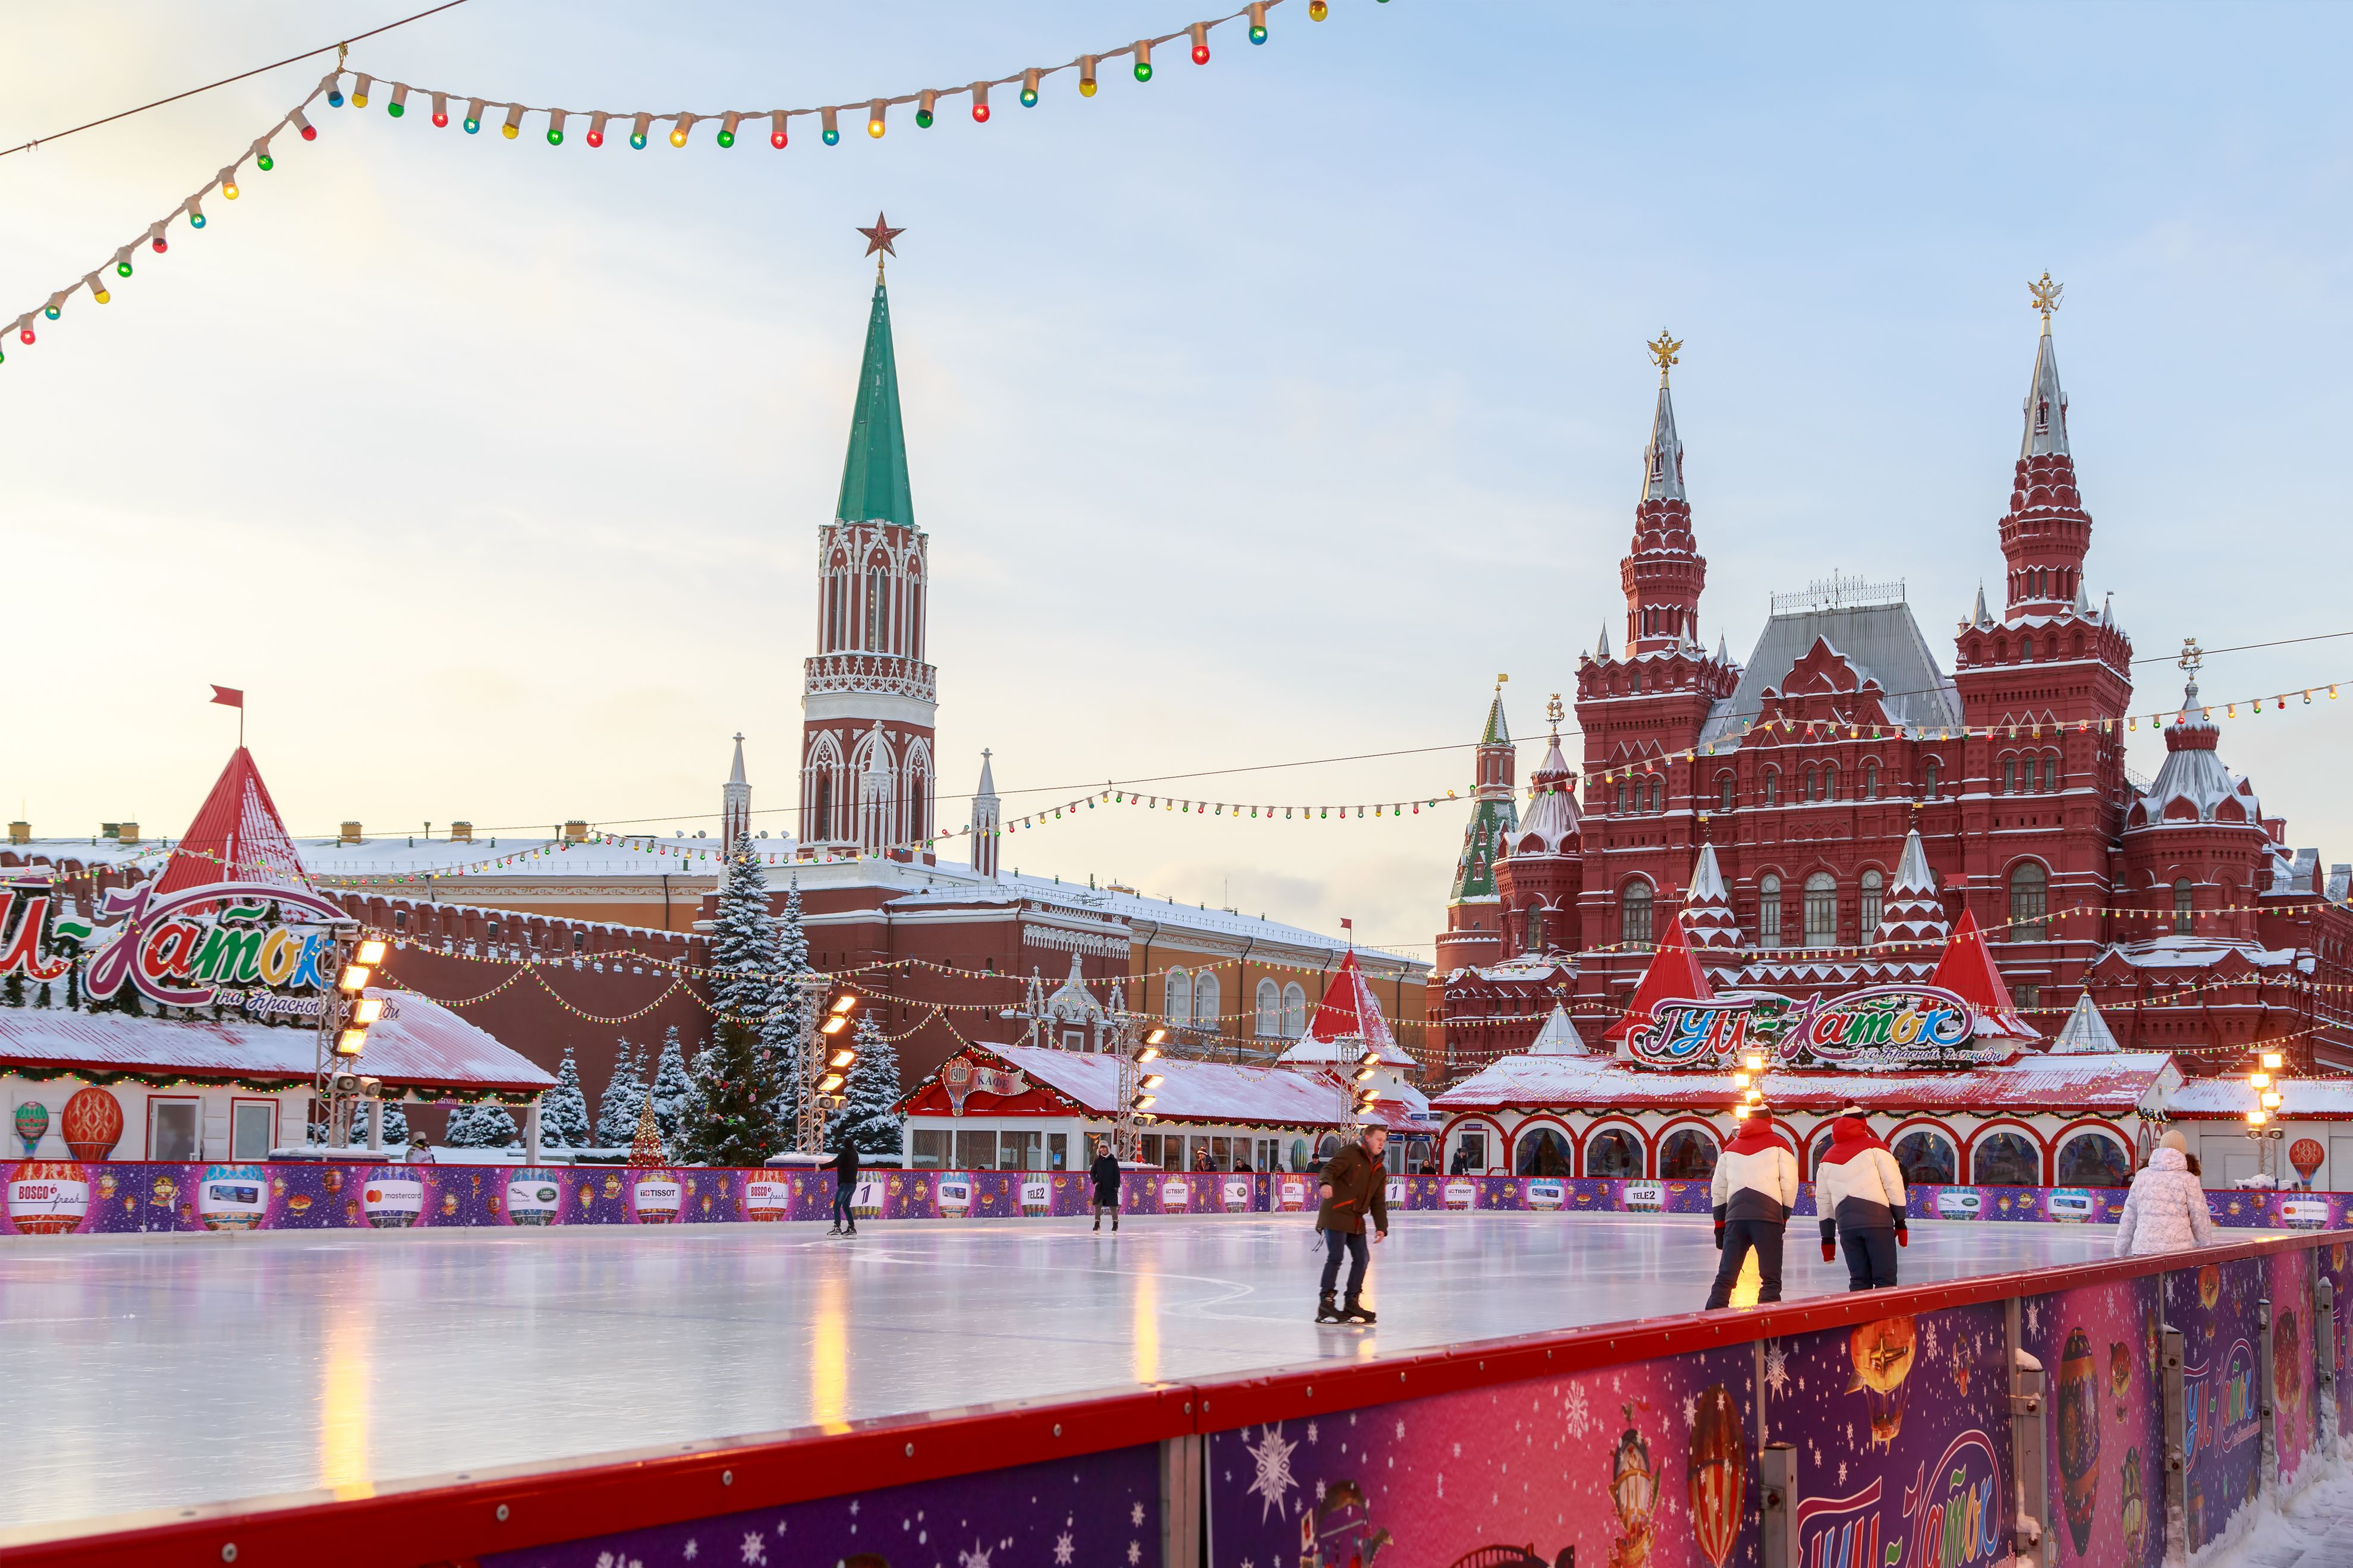 Ice skating rink on the Red Square near the walls of the Moscow Kremlin